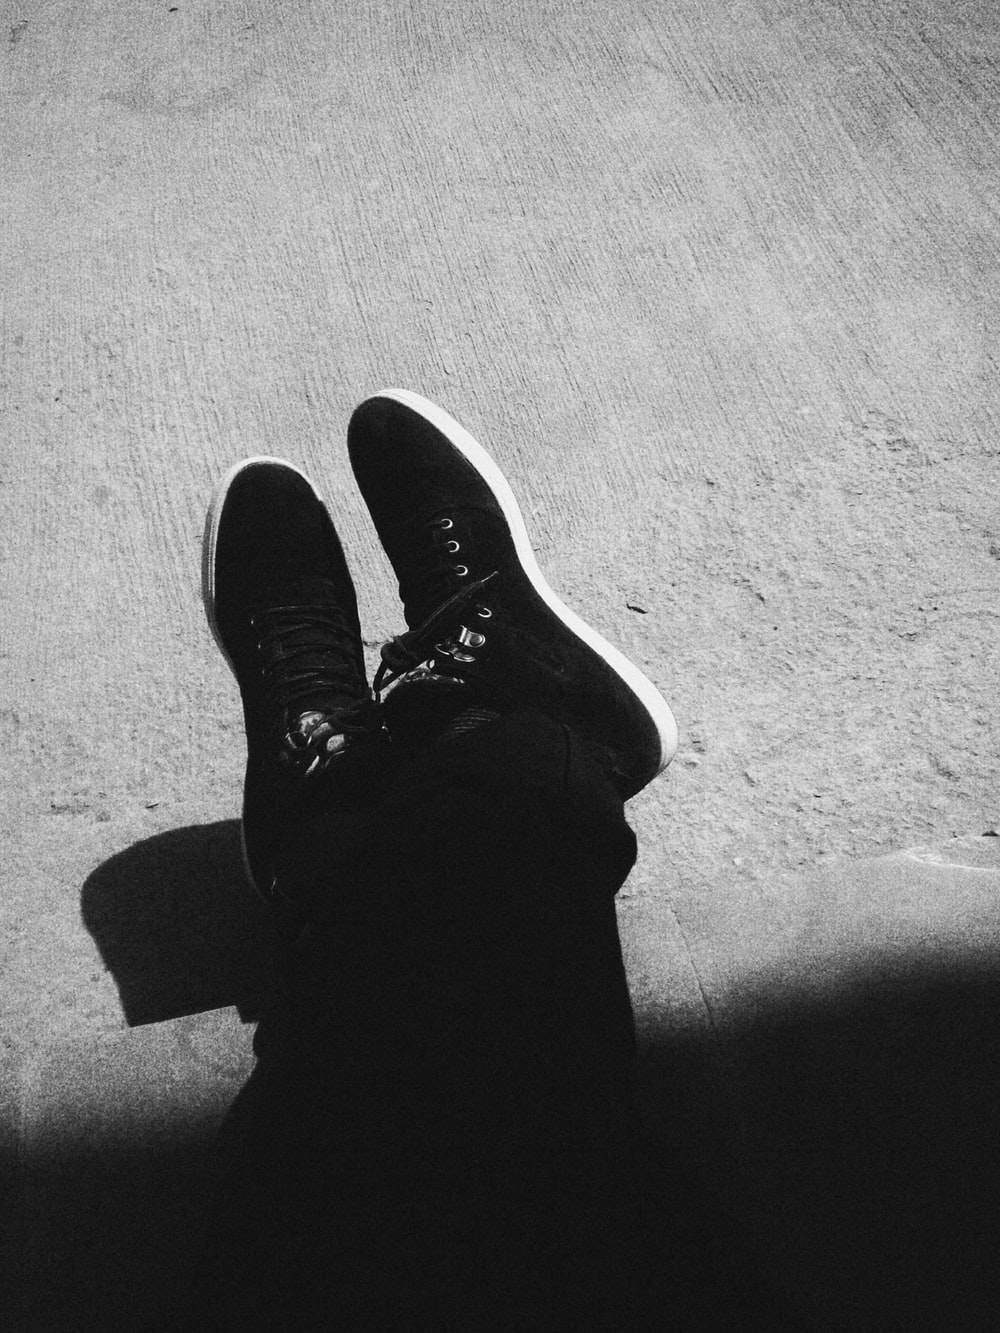 be9d7003c0d grayscale photography of person wearing black sneakers sitting on floor